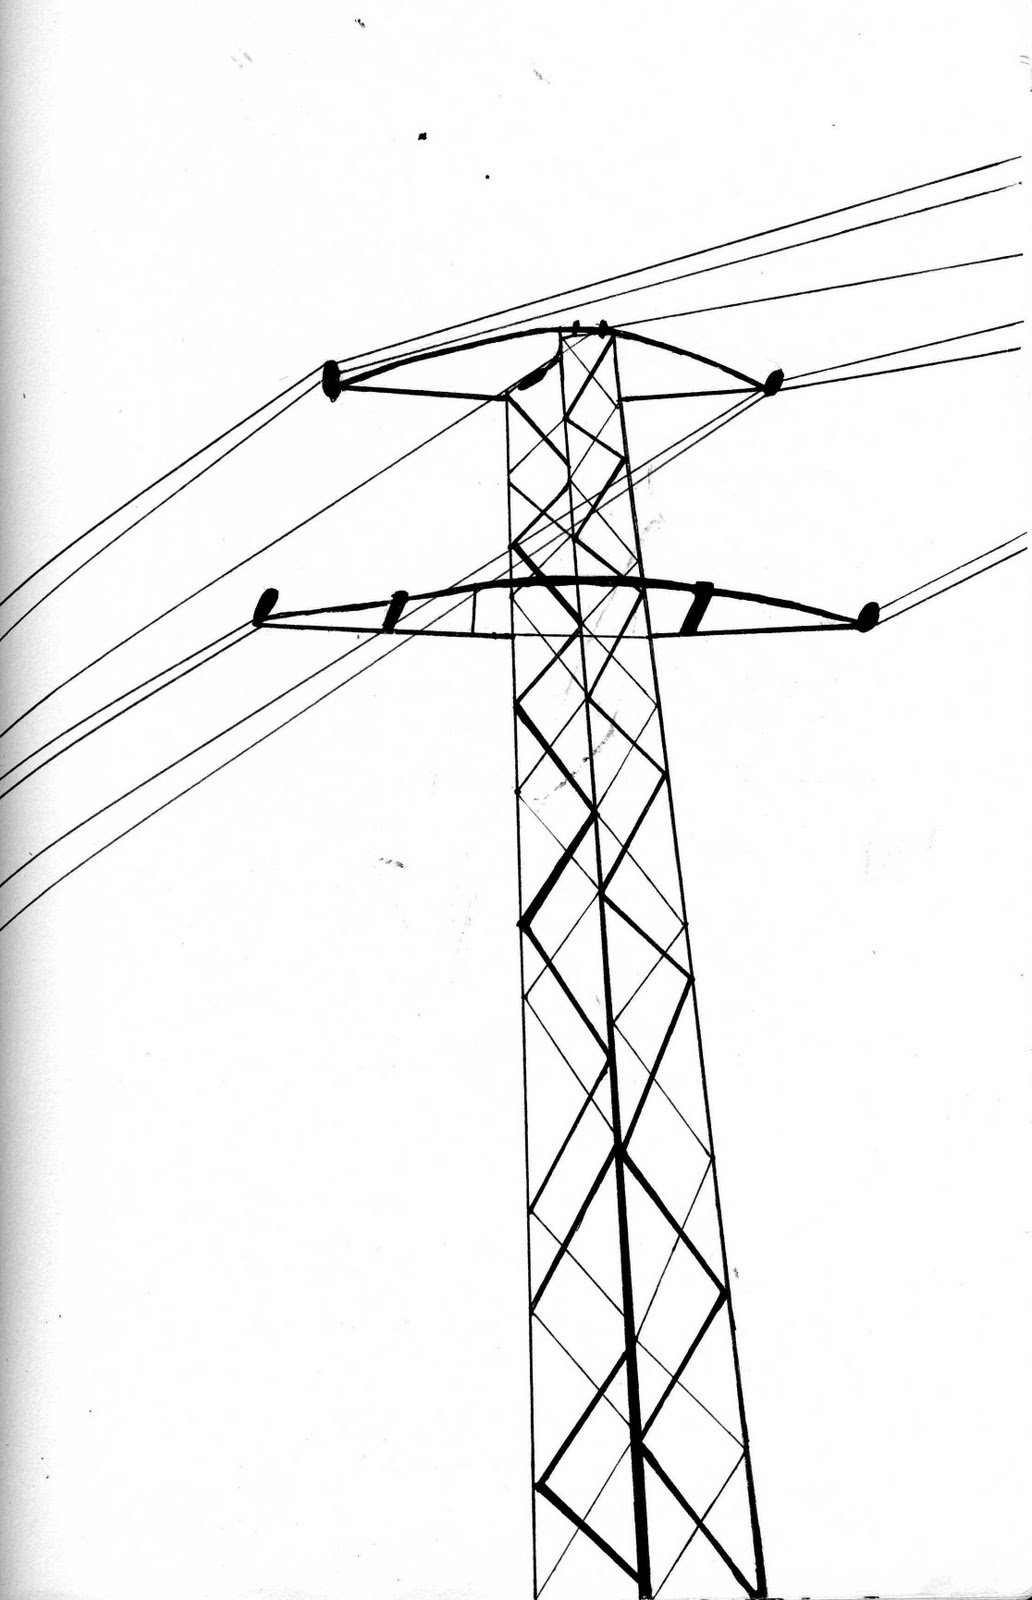 Utility Pole Drawing at GetDrawings.com   Free for personal use ...